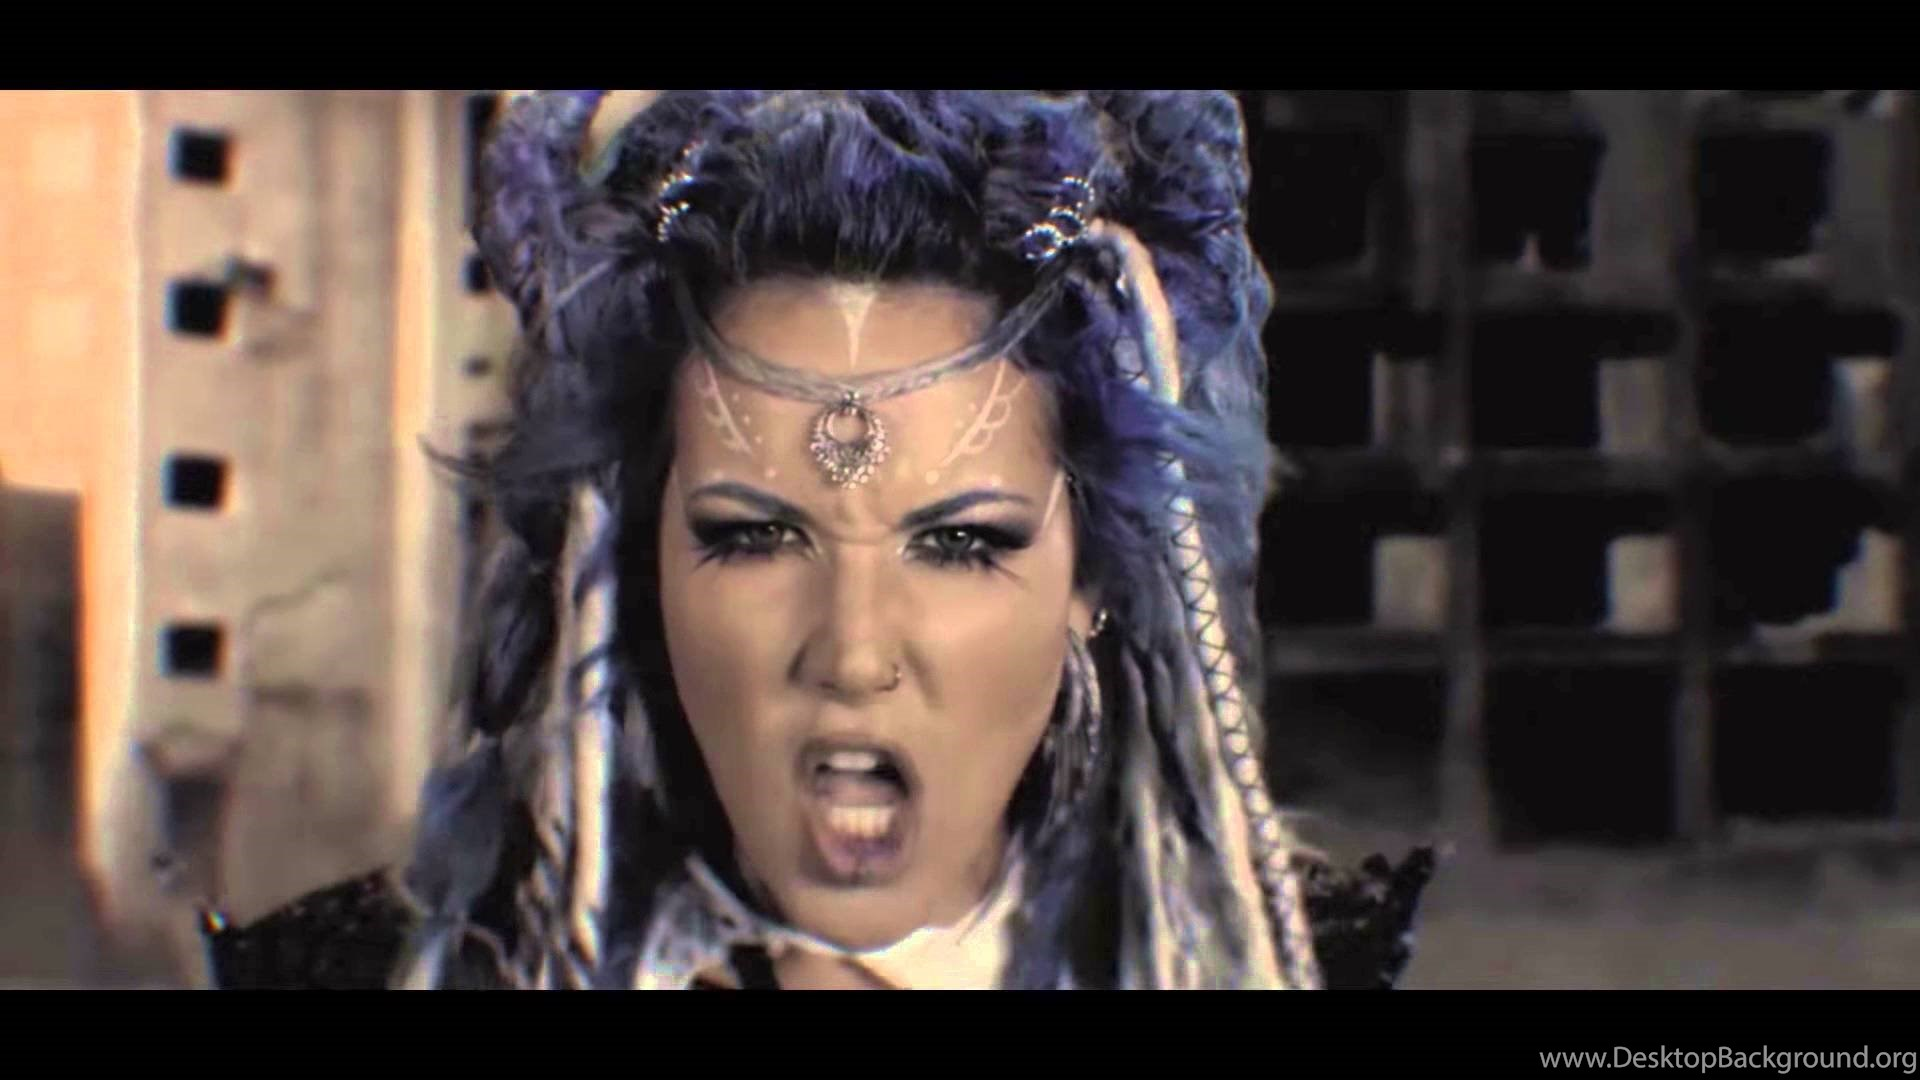 Kamelot Liar Liar Ft Alissa White Gluz Official Video Napalm